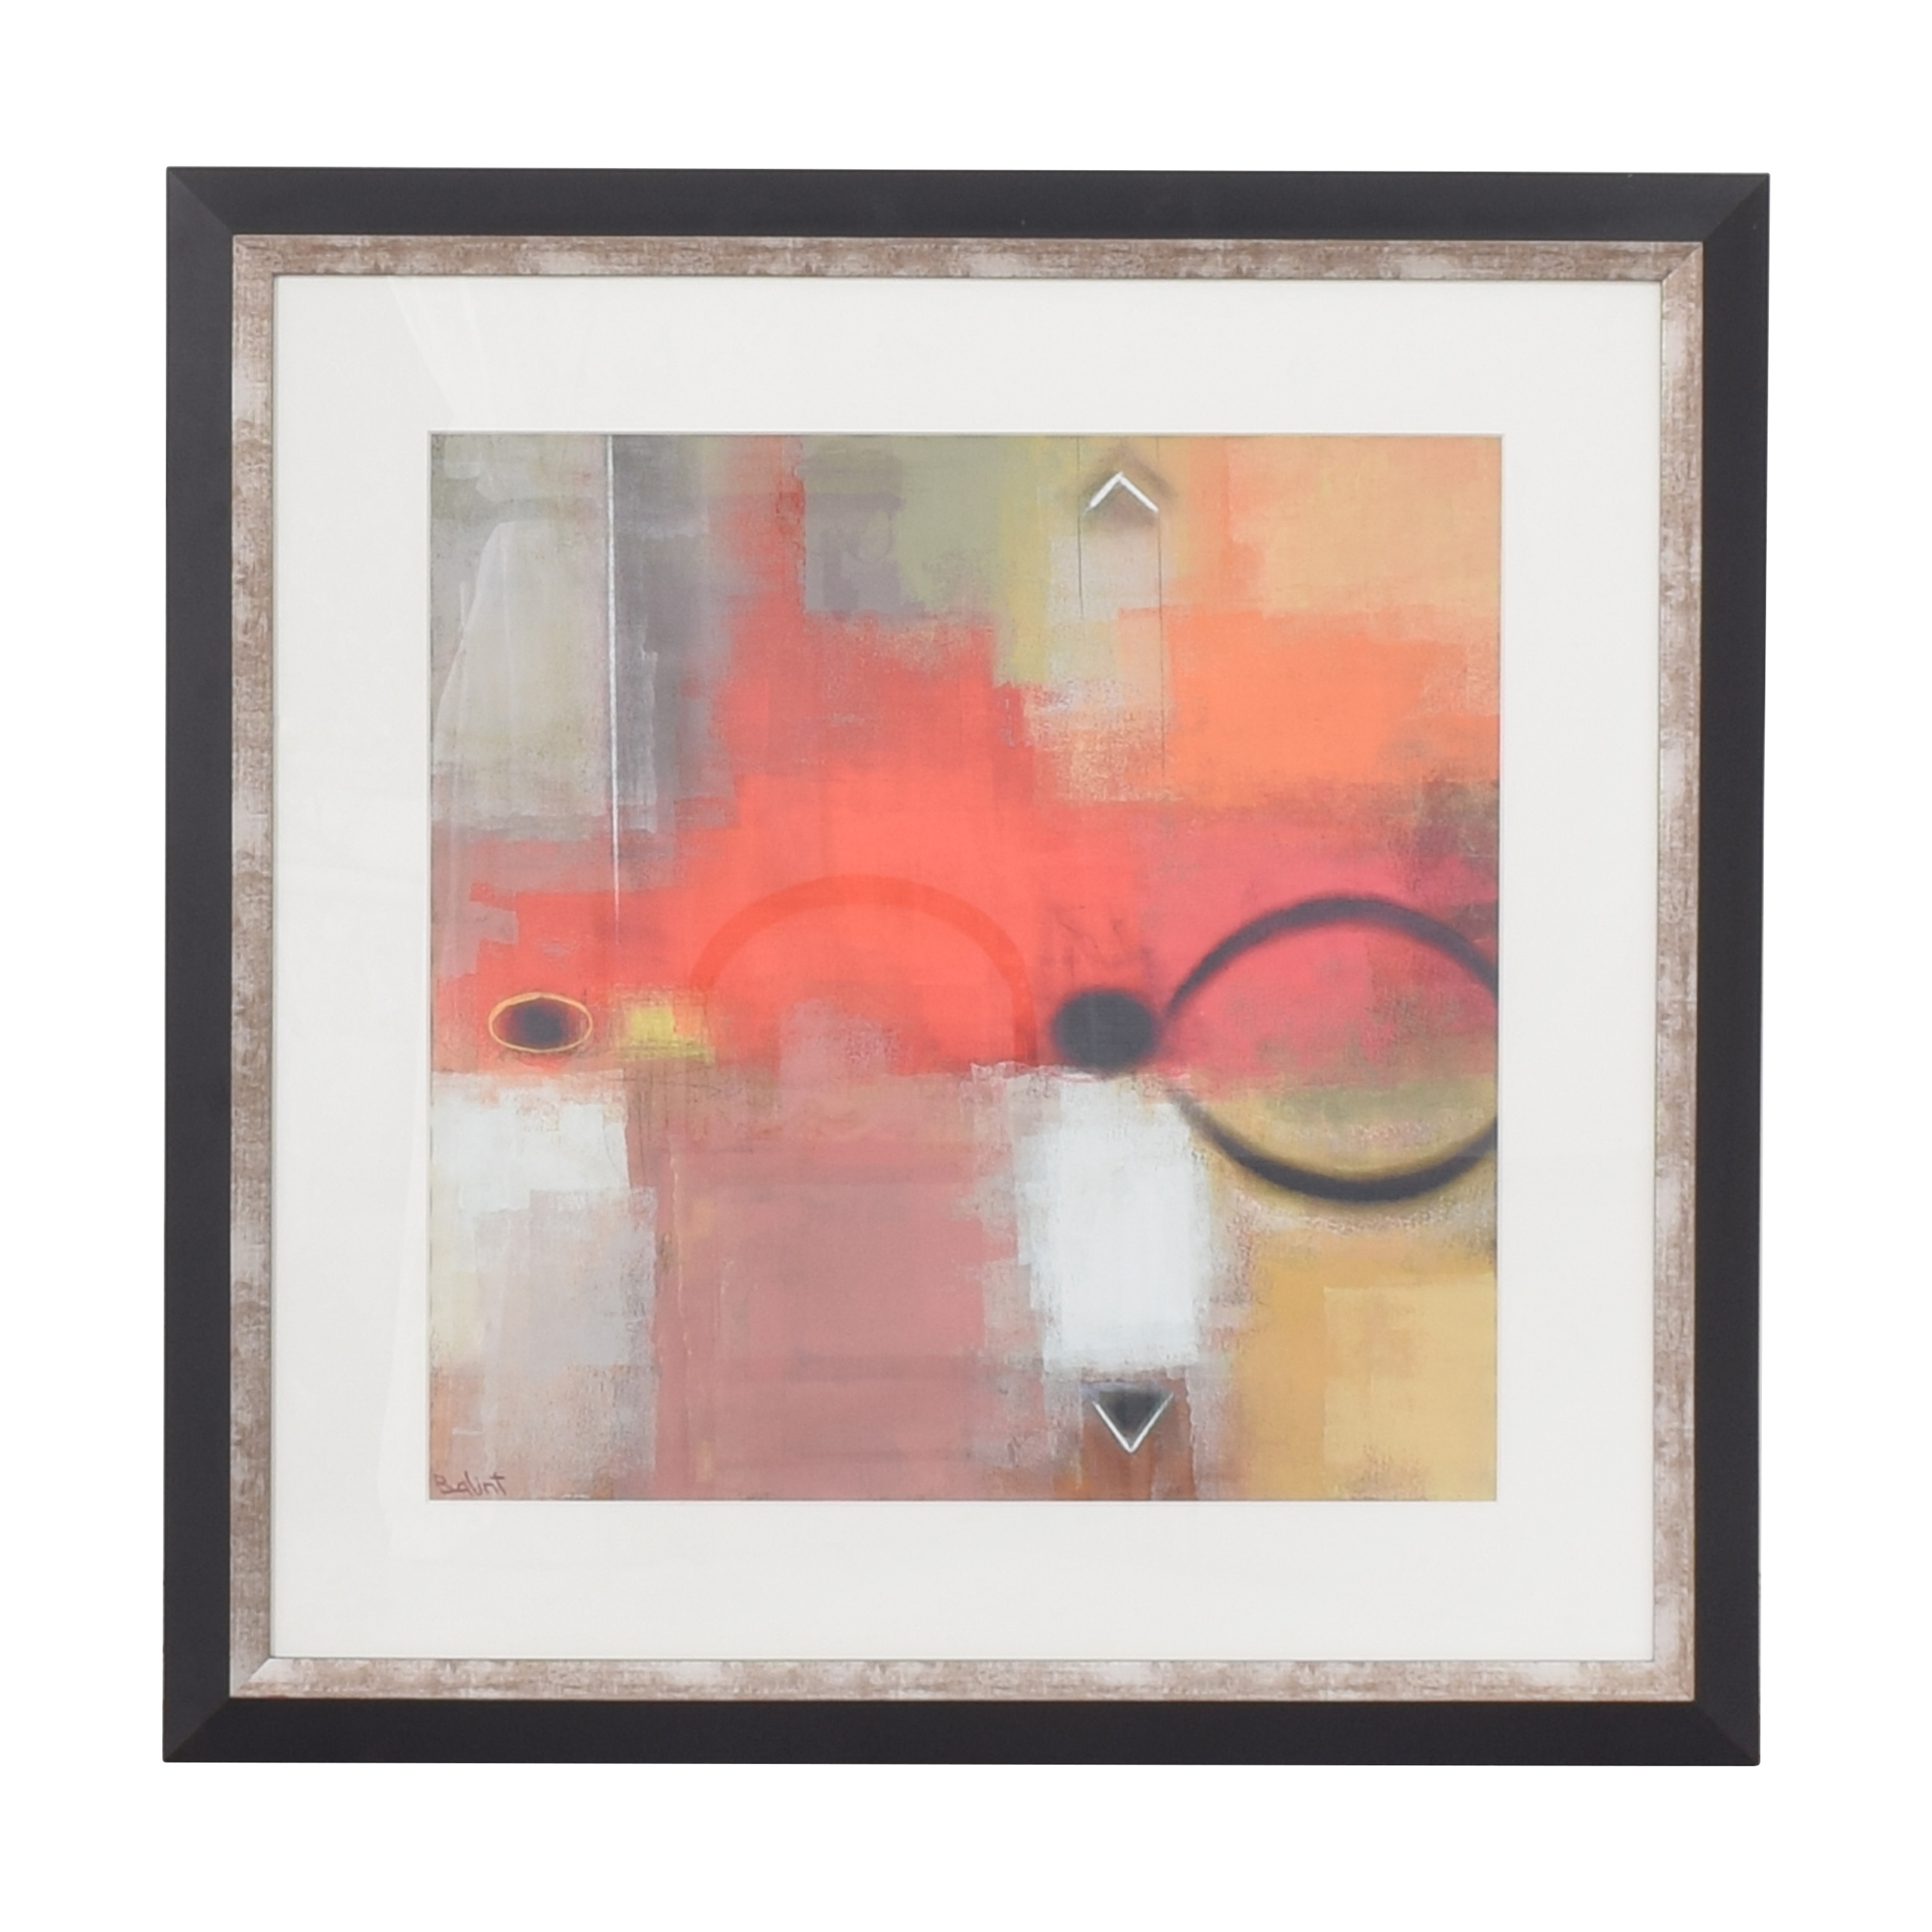 Eric Balint Escorial Framed Wall Art sale